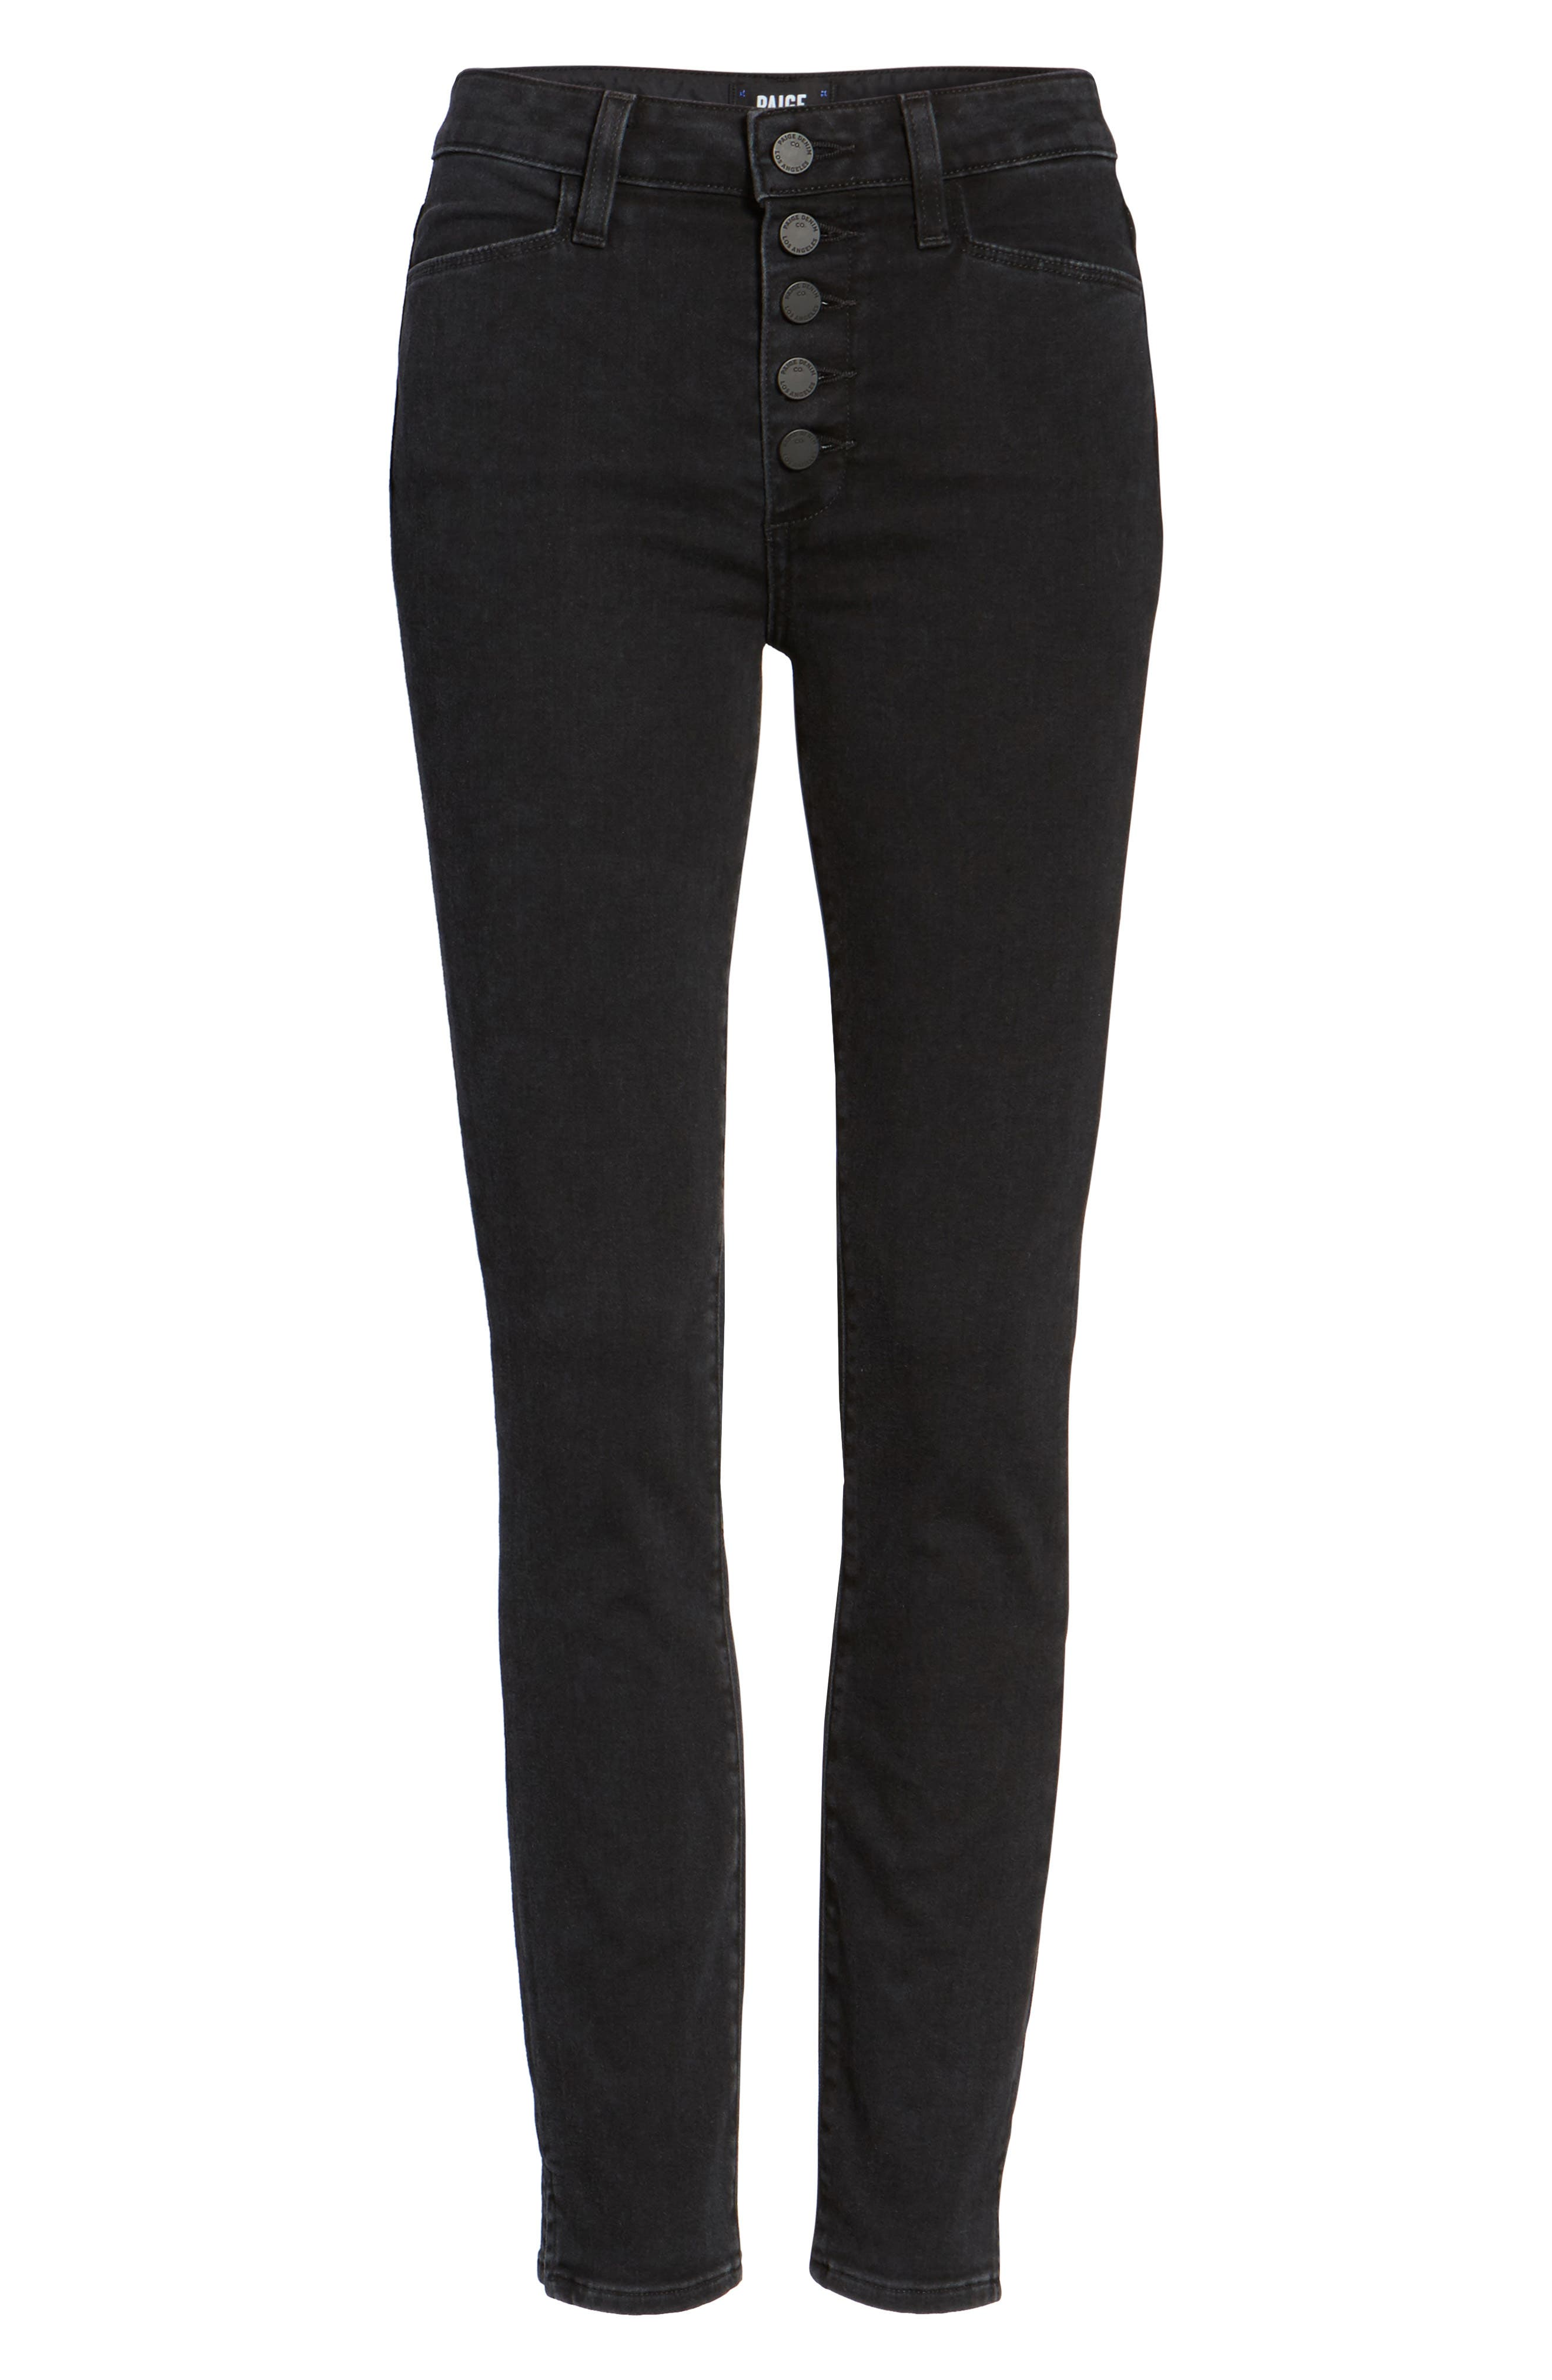 Hoxton Button High Waist Ankle Skinny Jeans,                             Alternate thumbnail 6, color,                             Joannie